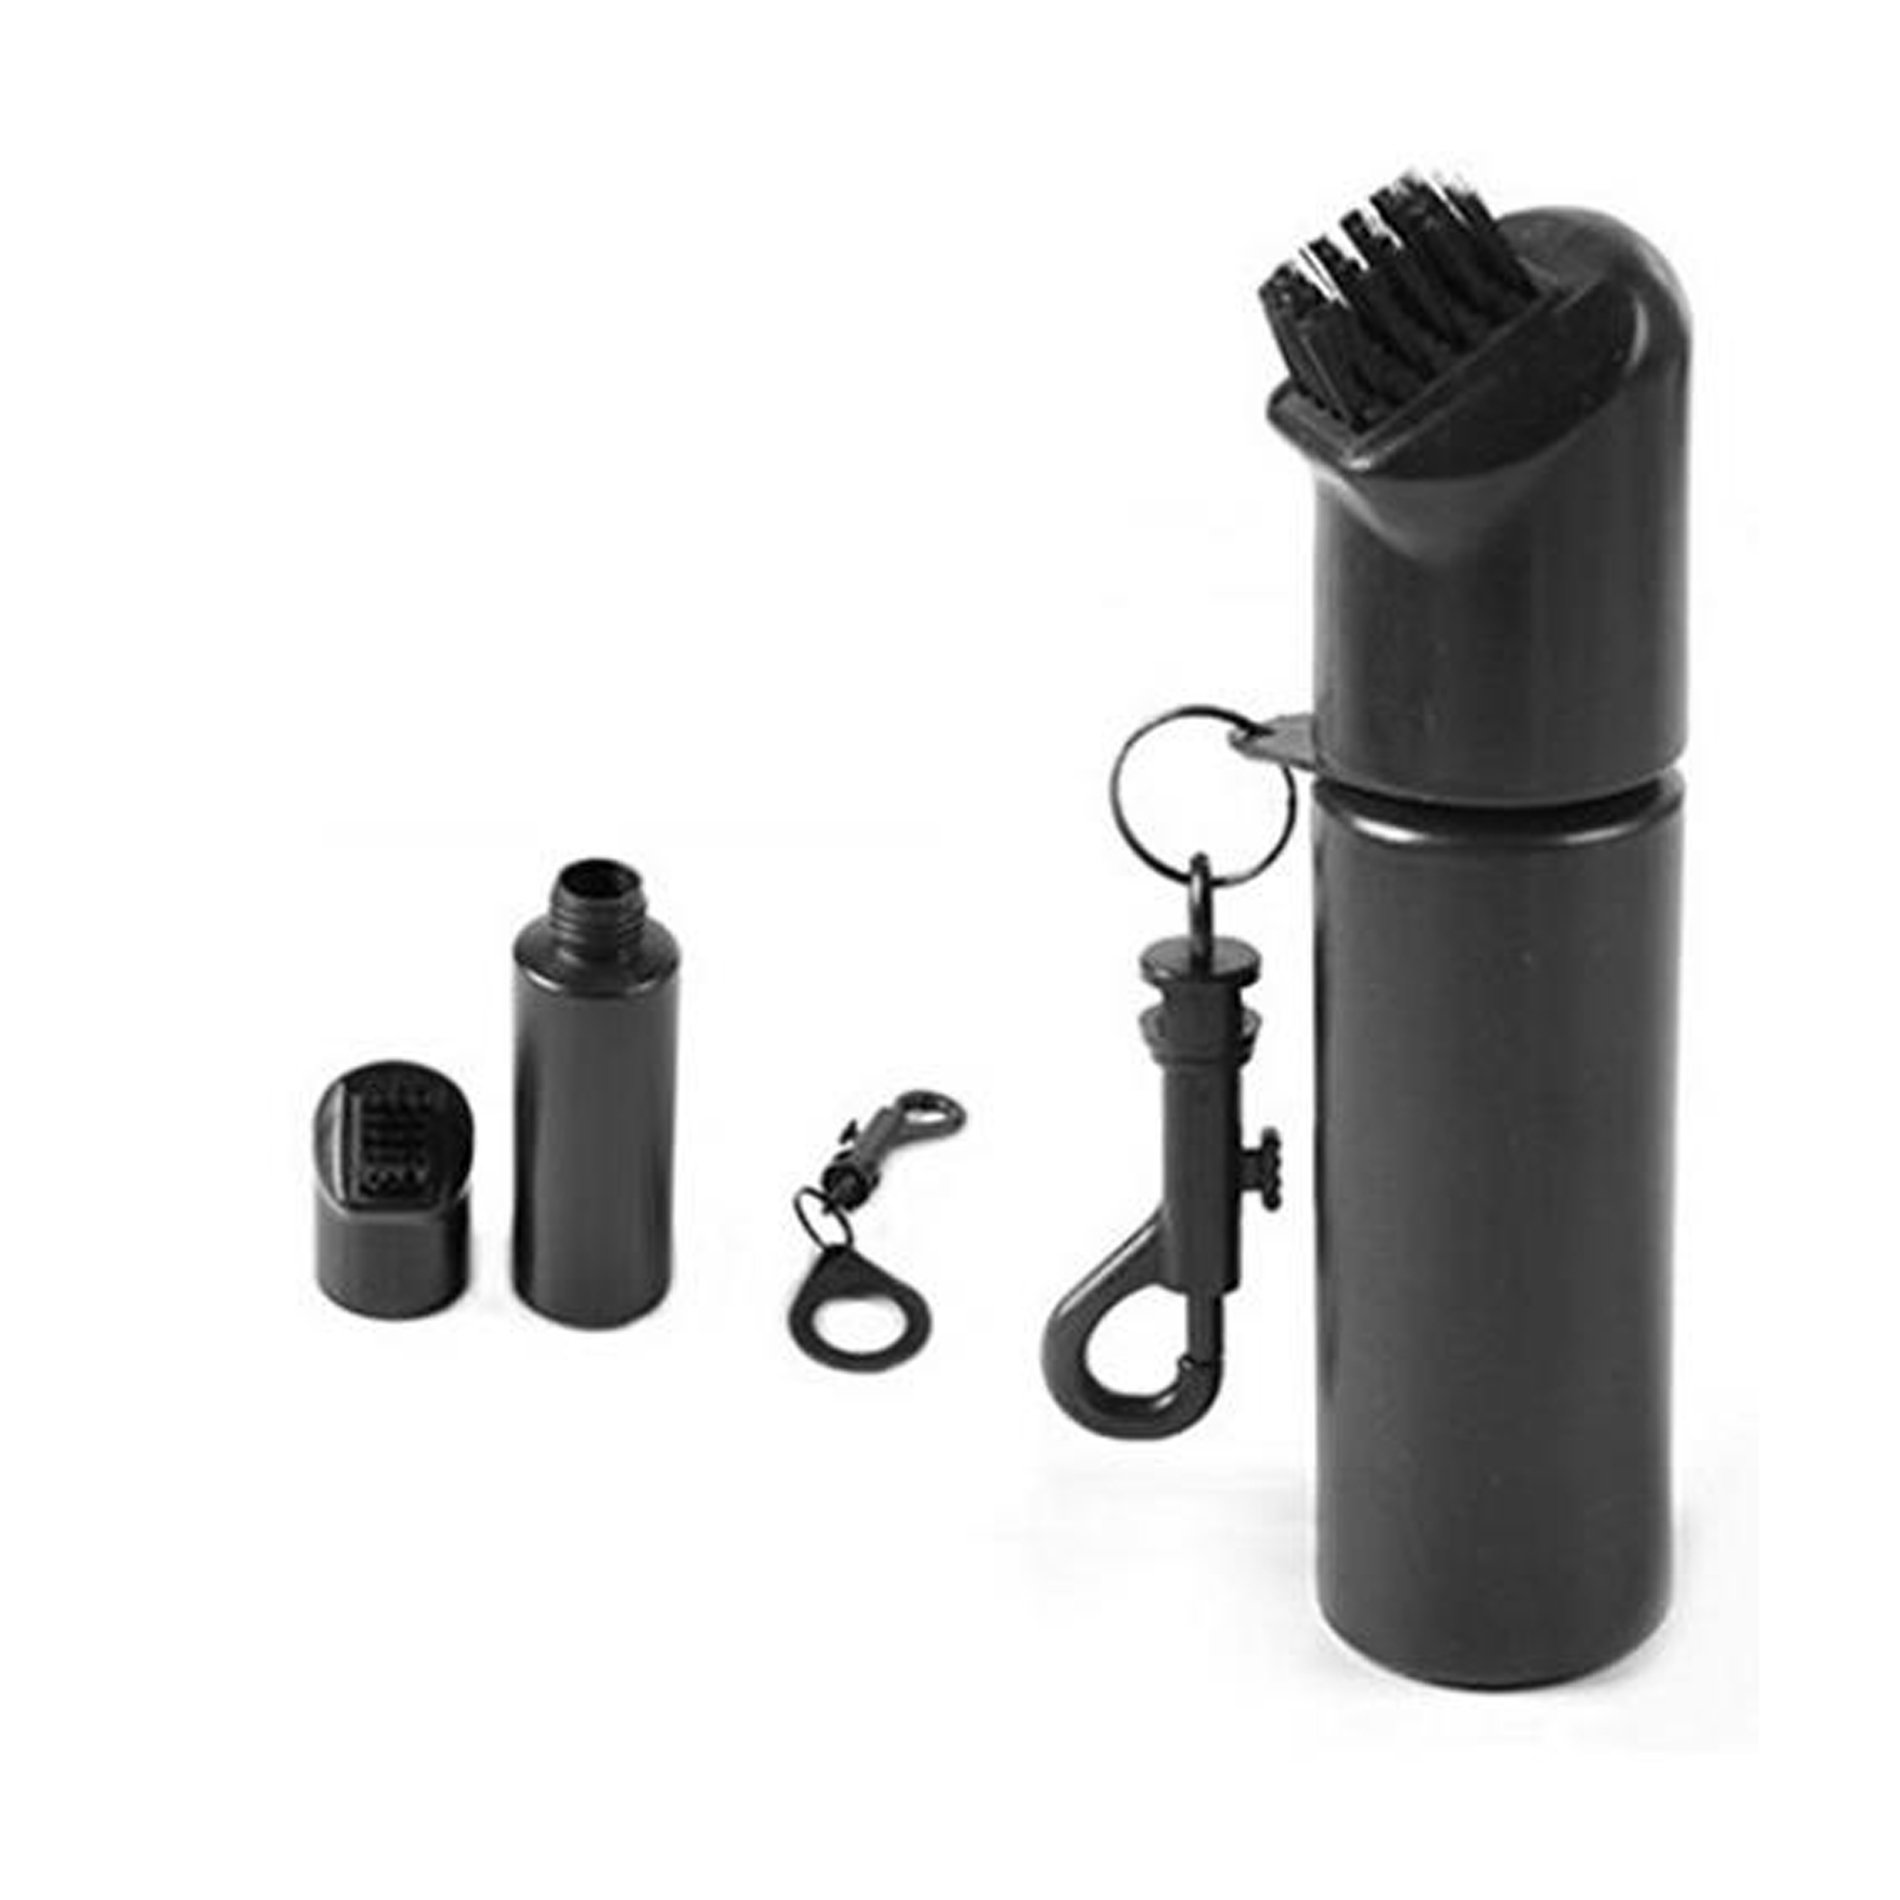 IDS Home POSMA Rain Cover Golf Bag Bundle Set with Golf Divot Repair, Wet Scrub Cleaning Brush by IDS Home (Image #3)